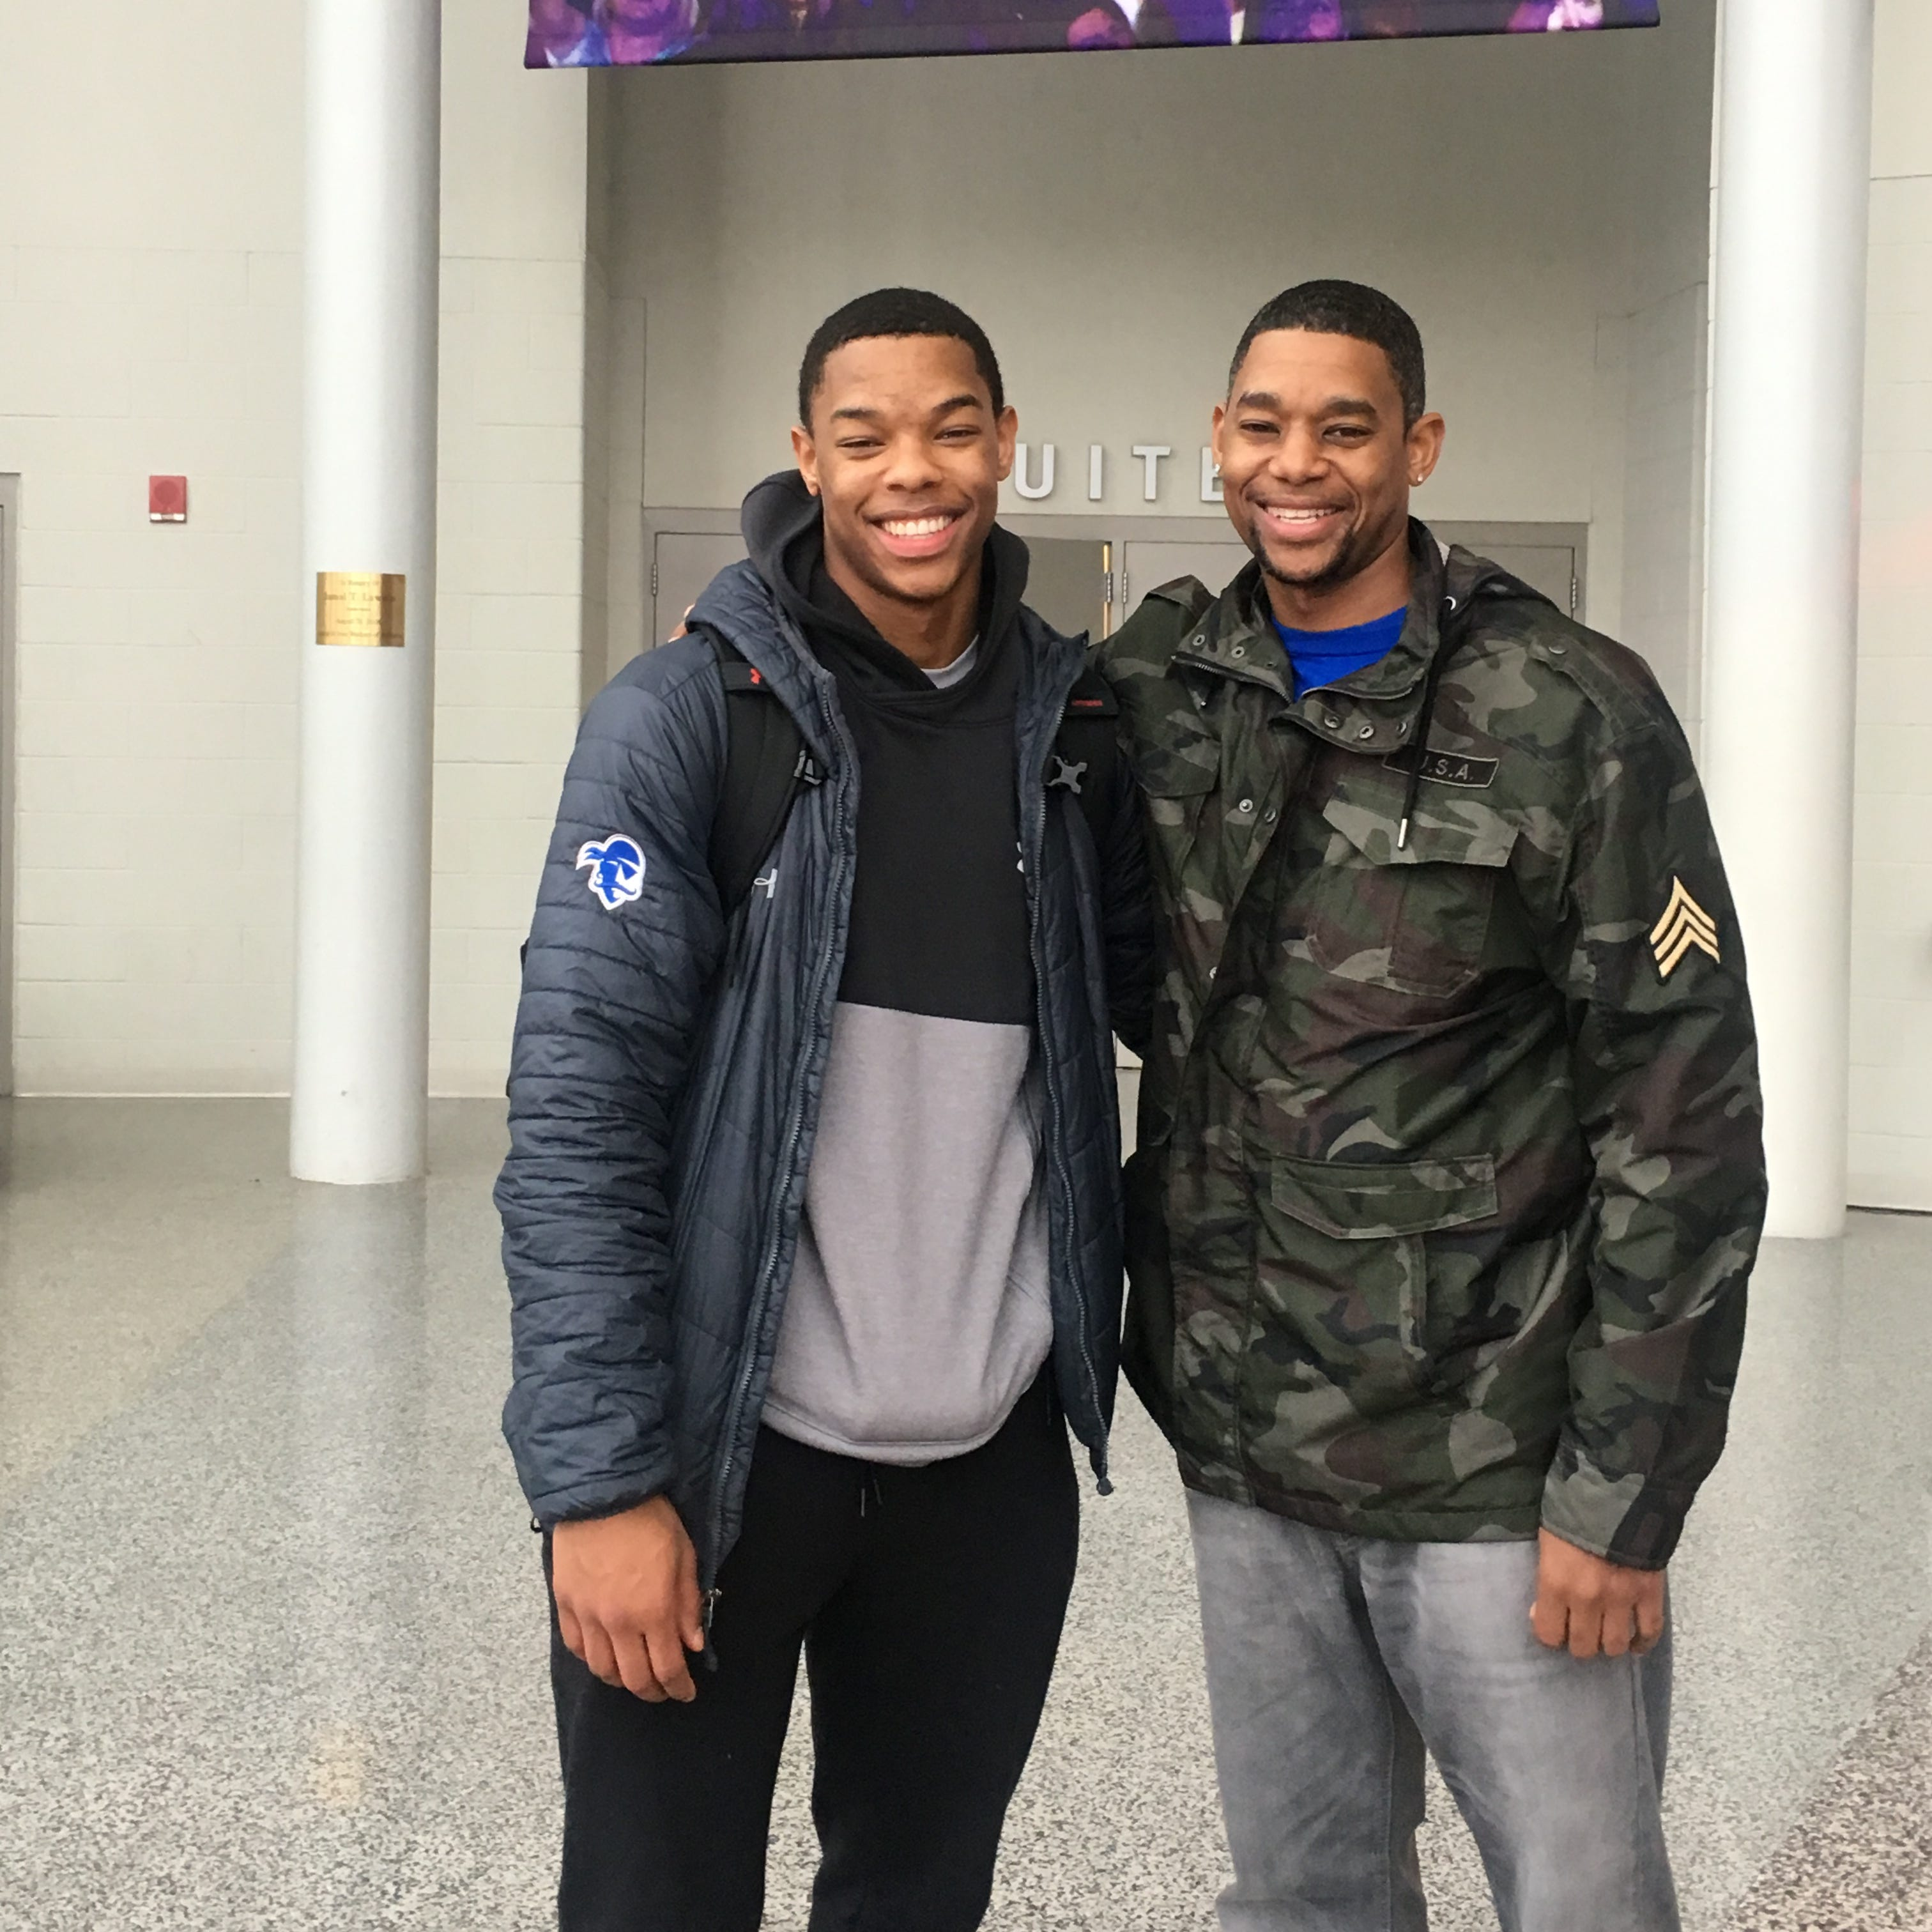 Shavar Reynolds Jr (left) with dad Shavar Reynolds Sr. (right) at the Prudential Center.